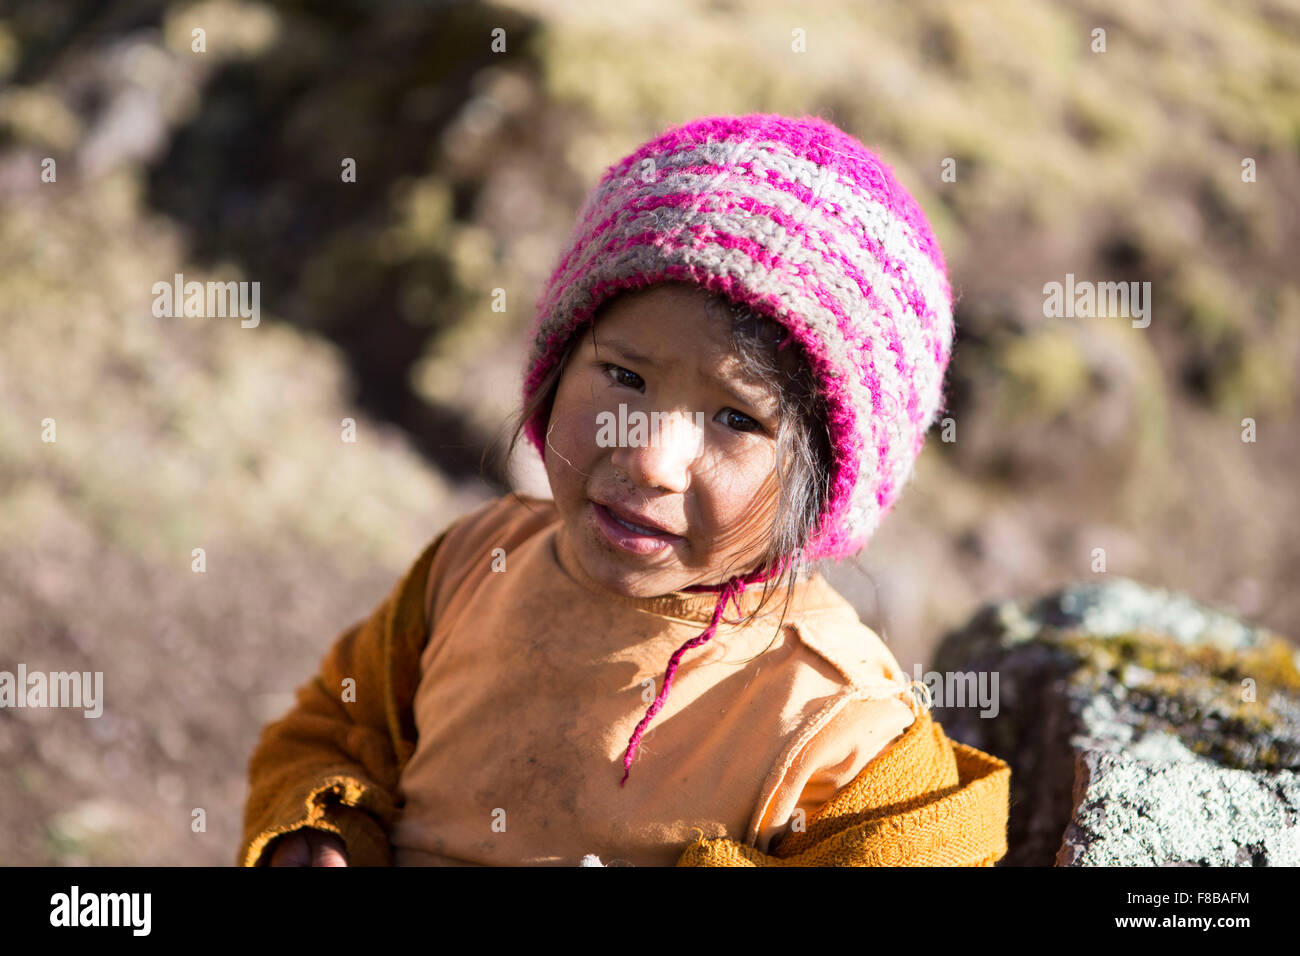 The Lares District of Peru. A young girl met by the photographer on a Lares trek - Stock Image